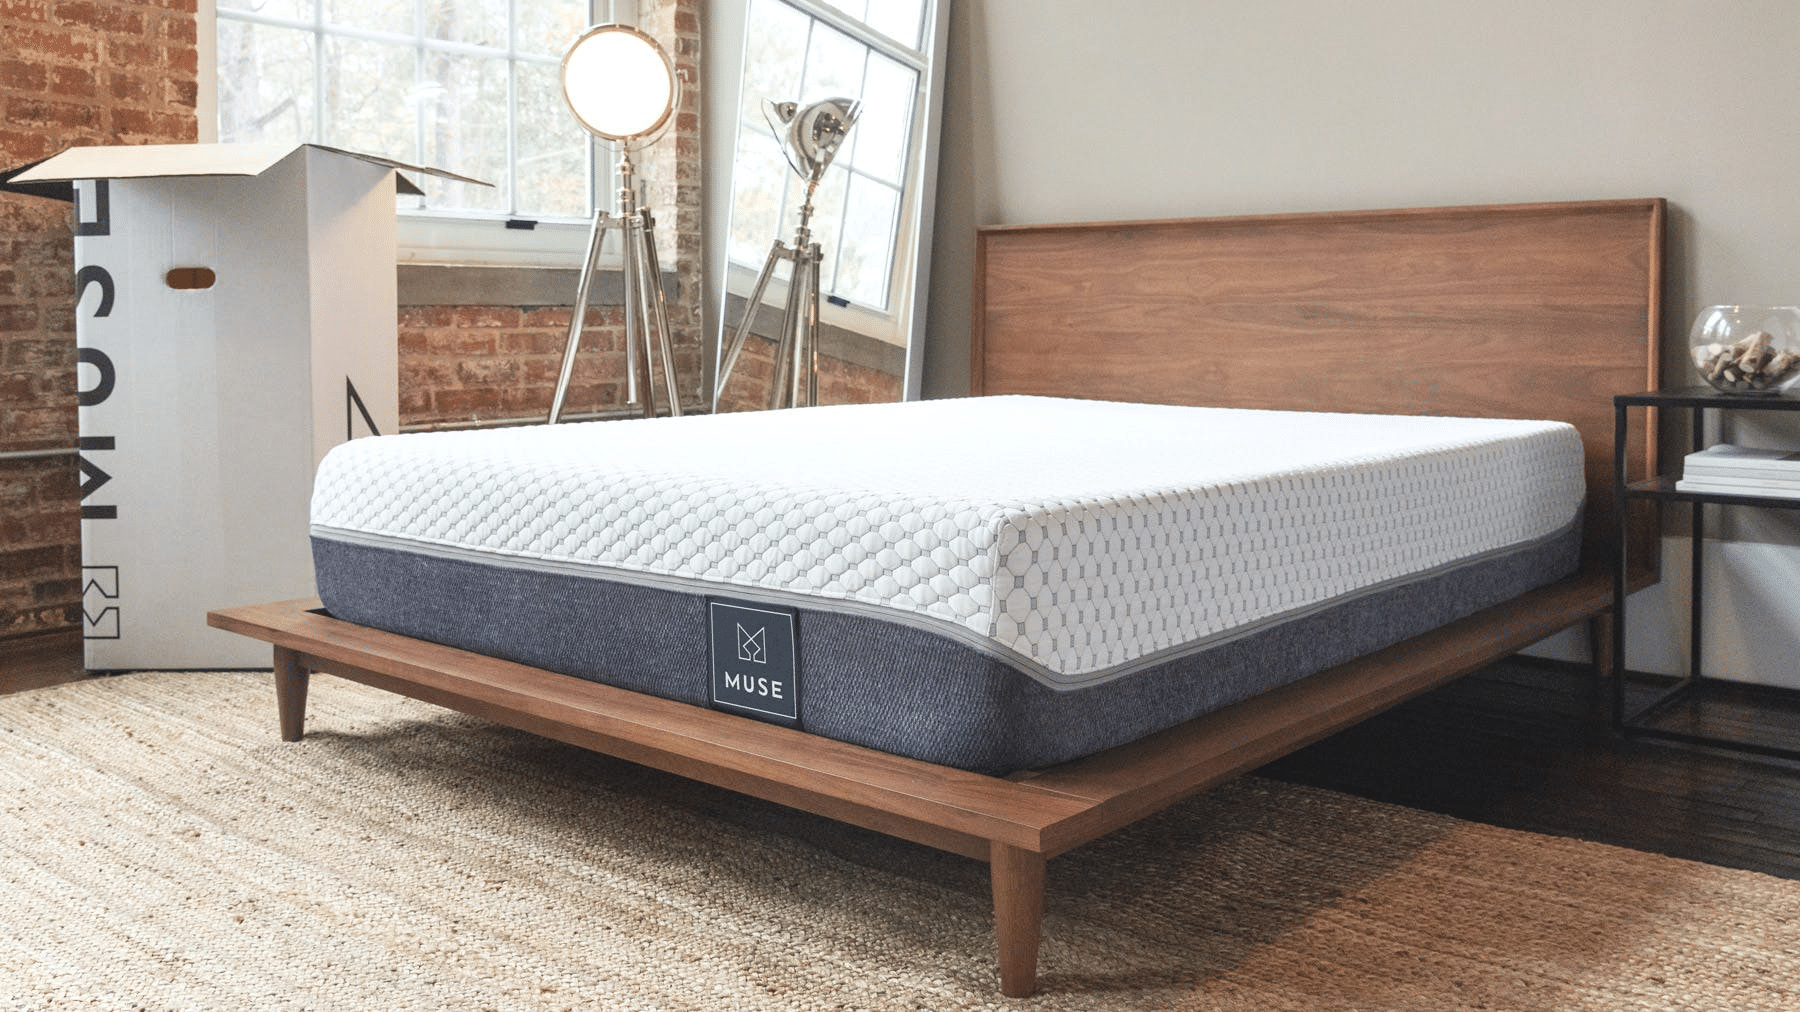 Best Cooling Memory Foam Mattress For Hot Sleepers